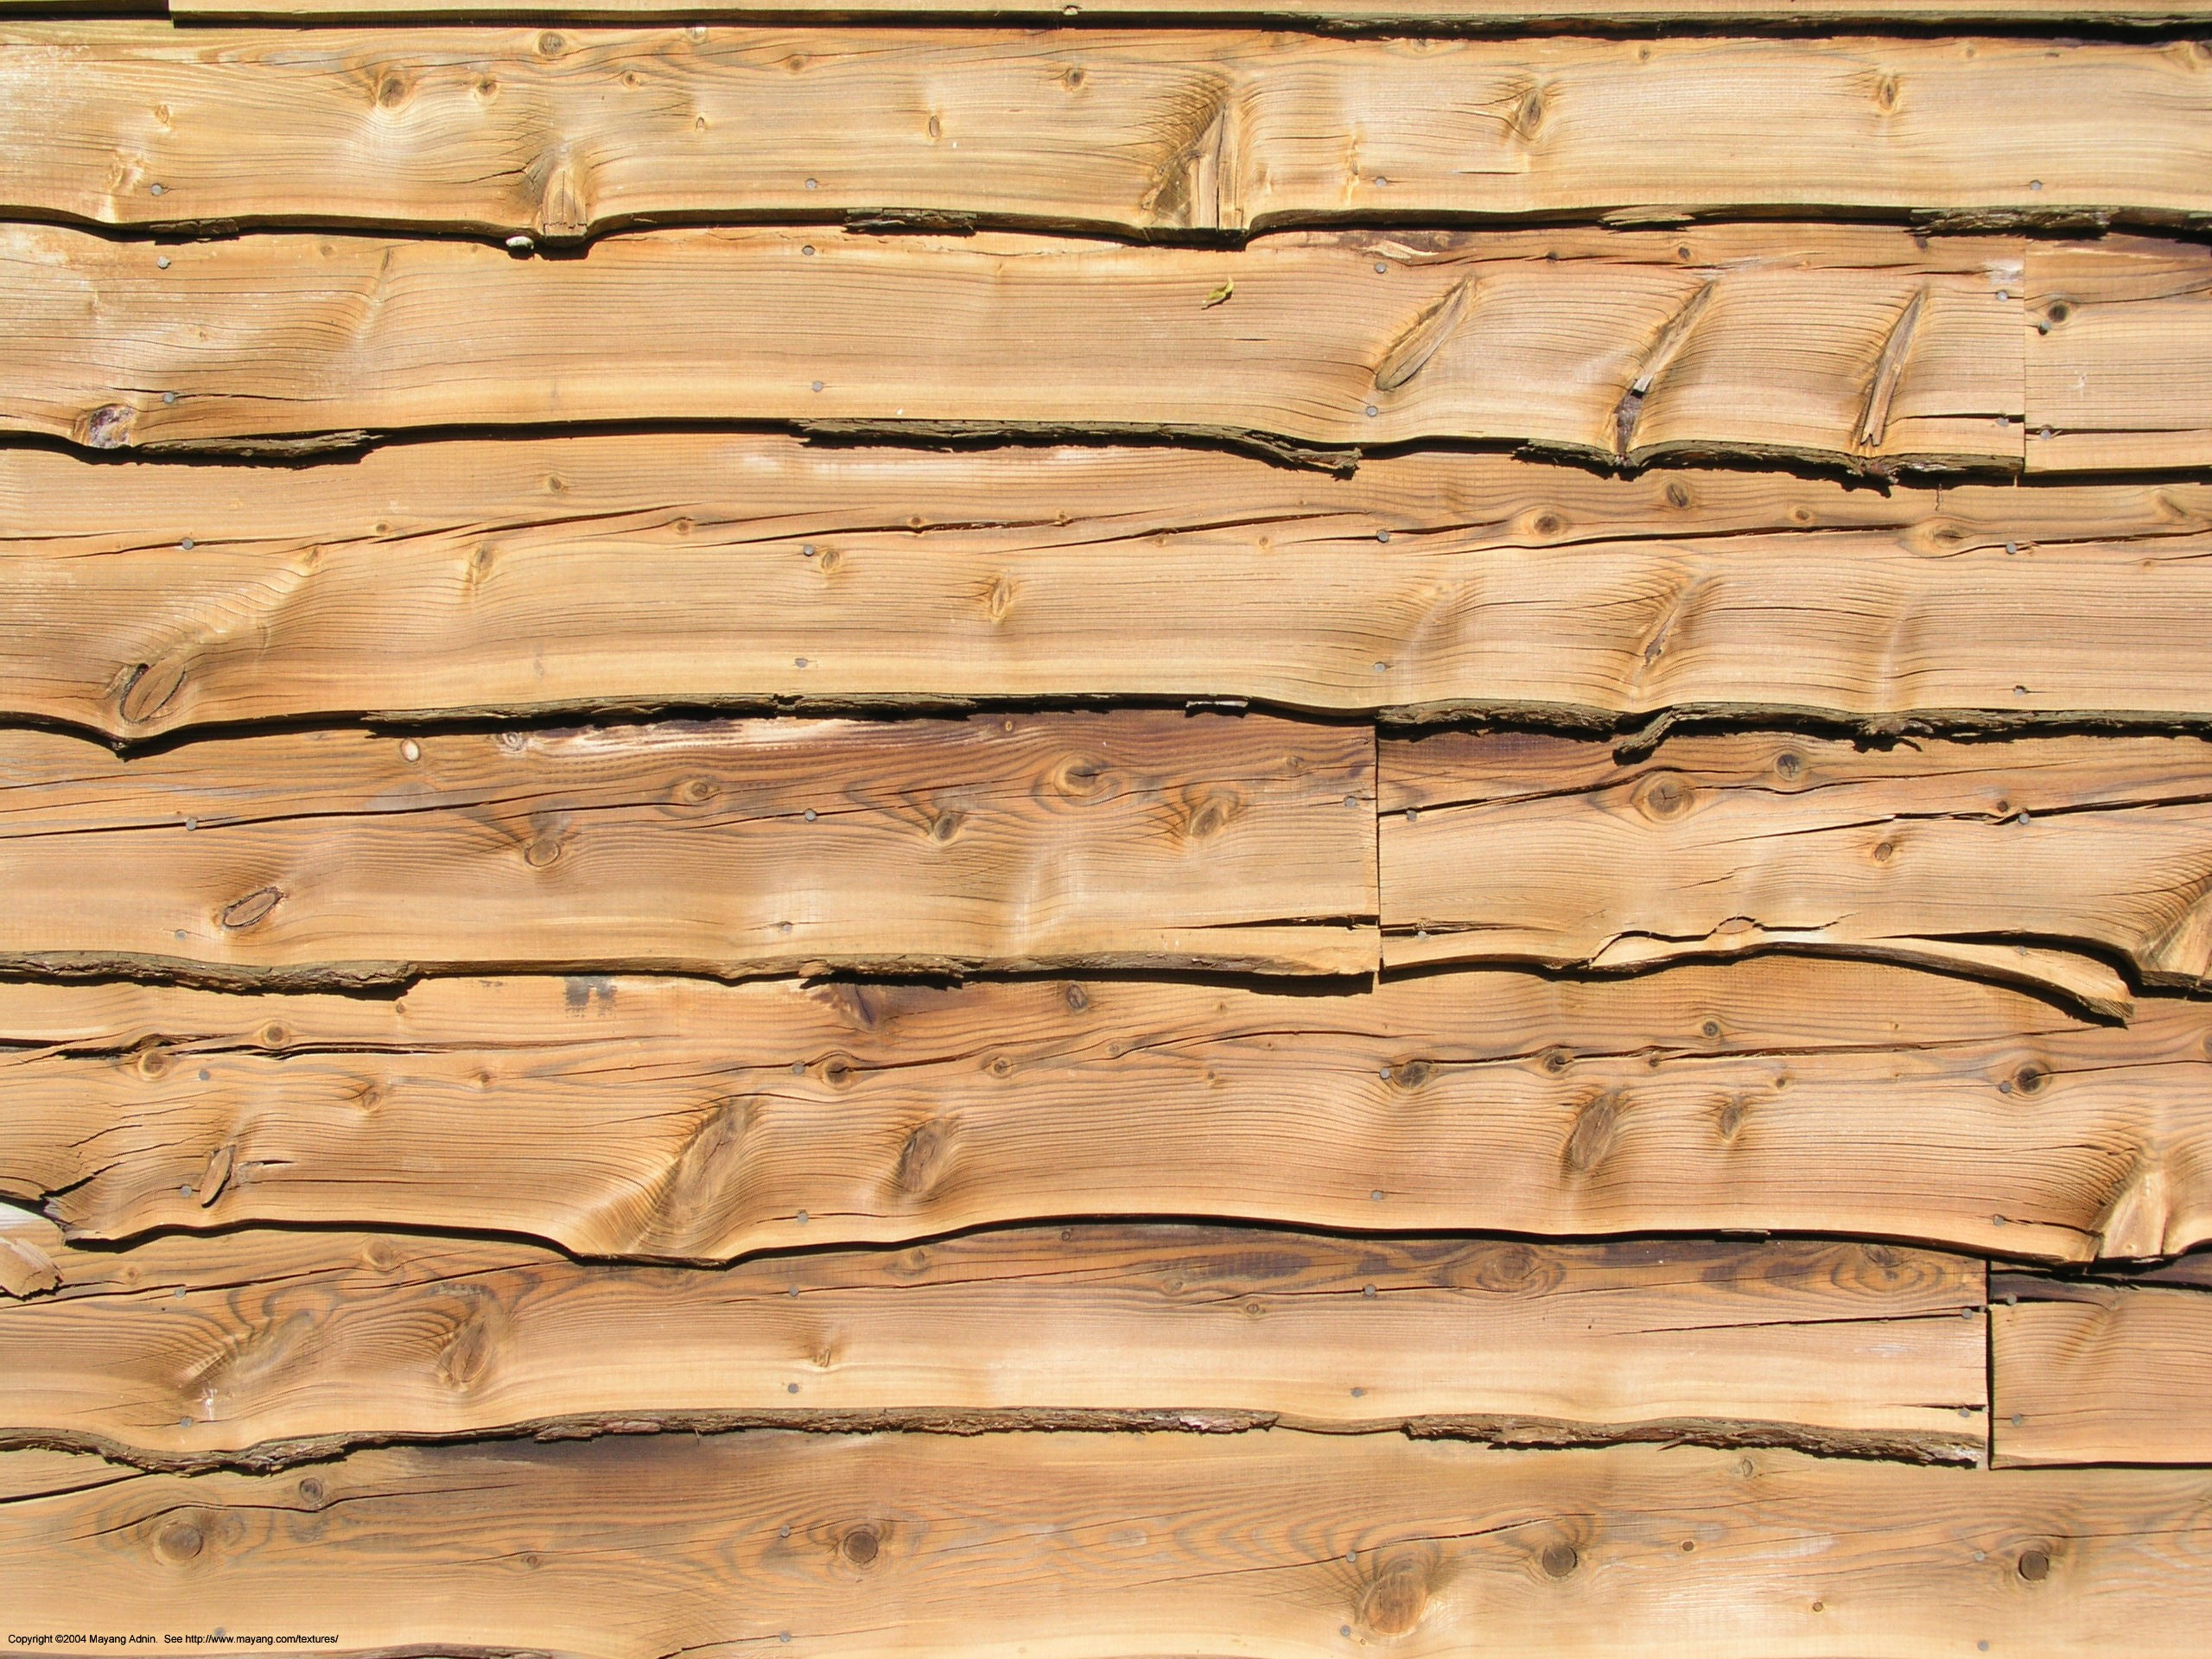 Rough Wood Planks ~ Wood plank background ·① download free awesome wallpapers